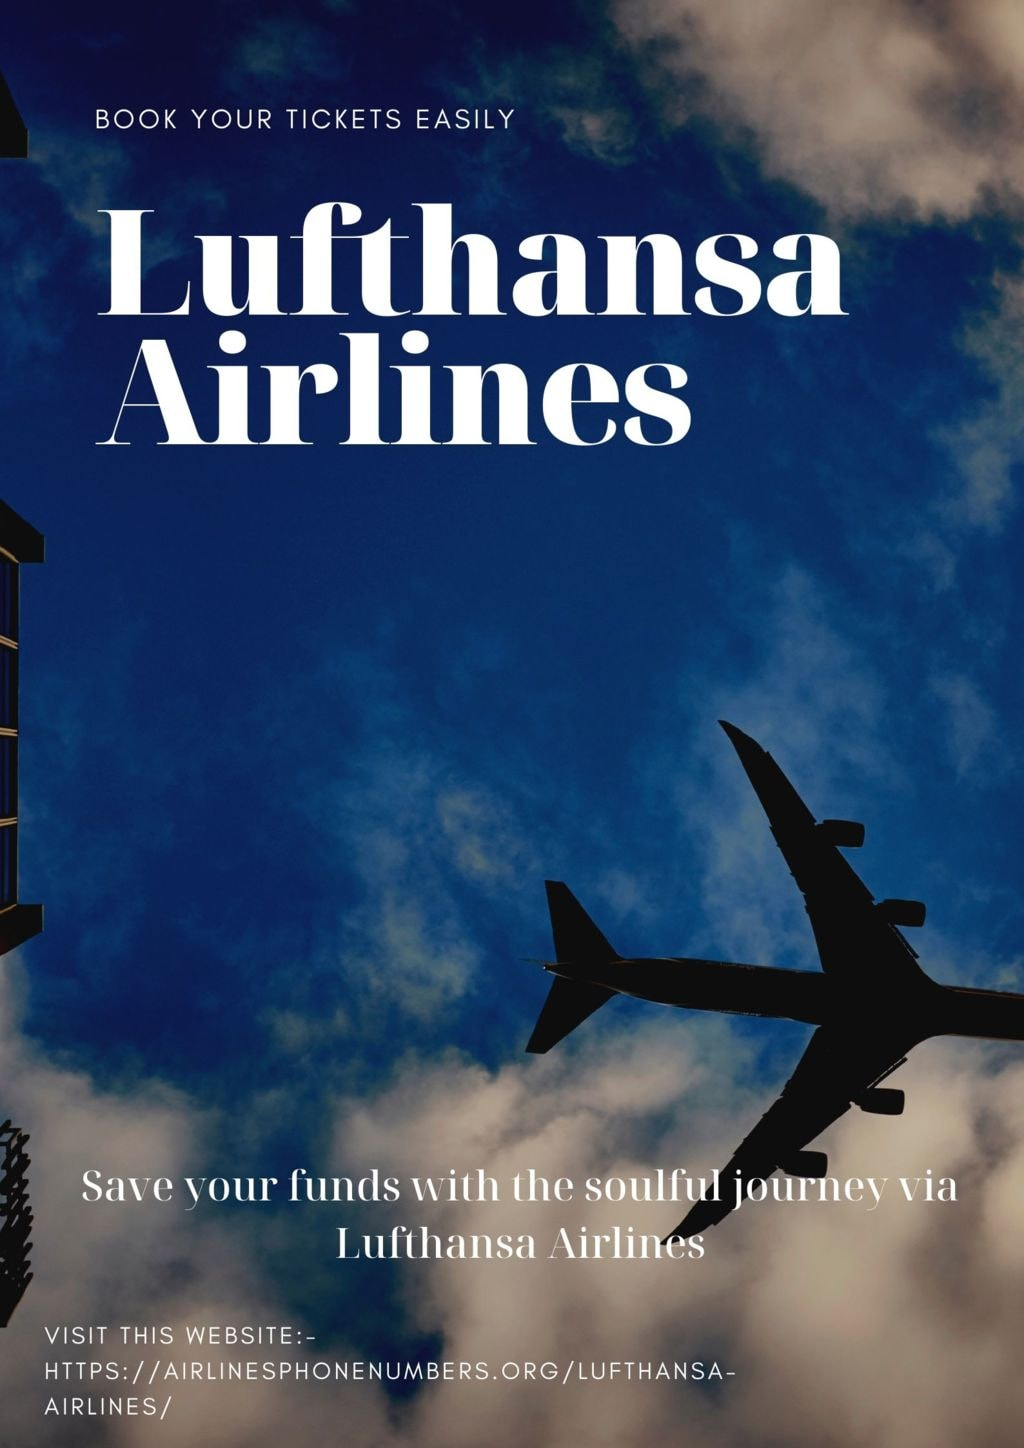 Save your funds with the soulful journey via Lufthansa Airli... via Harry Thomas